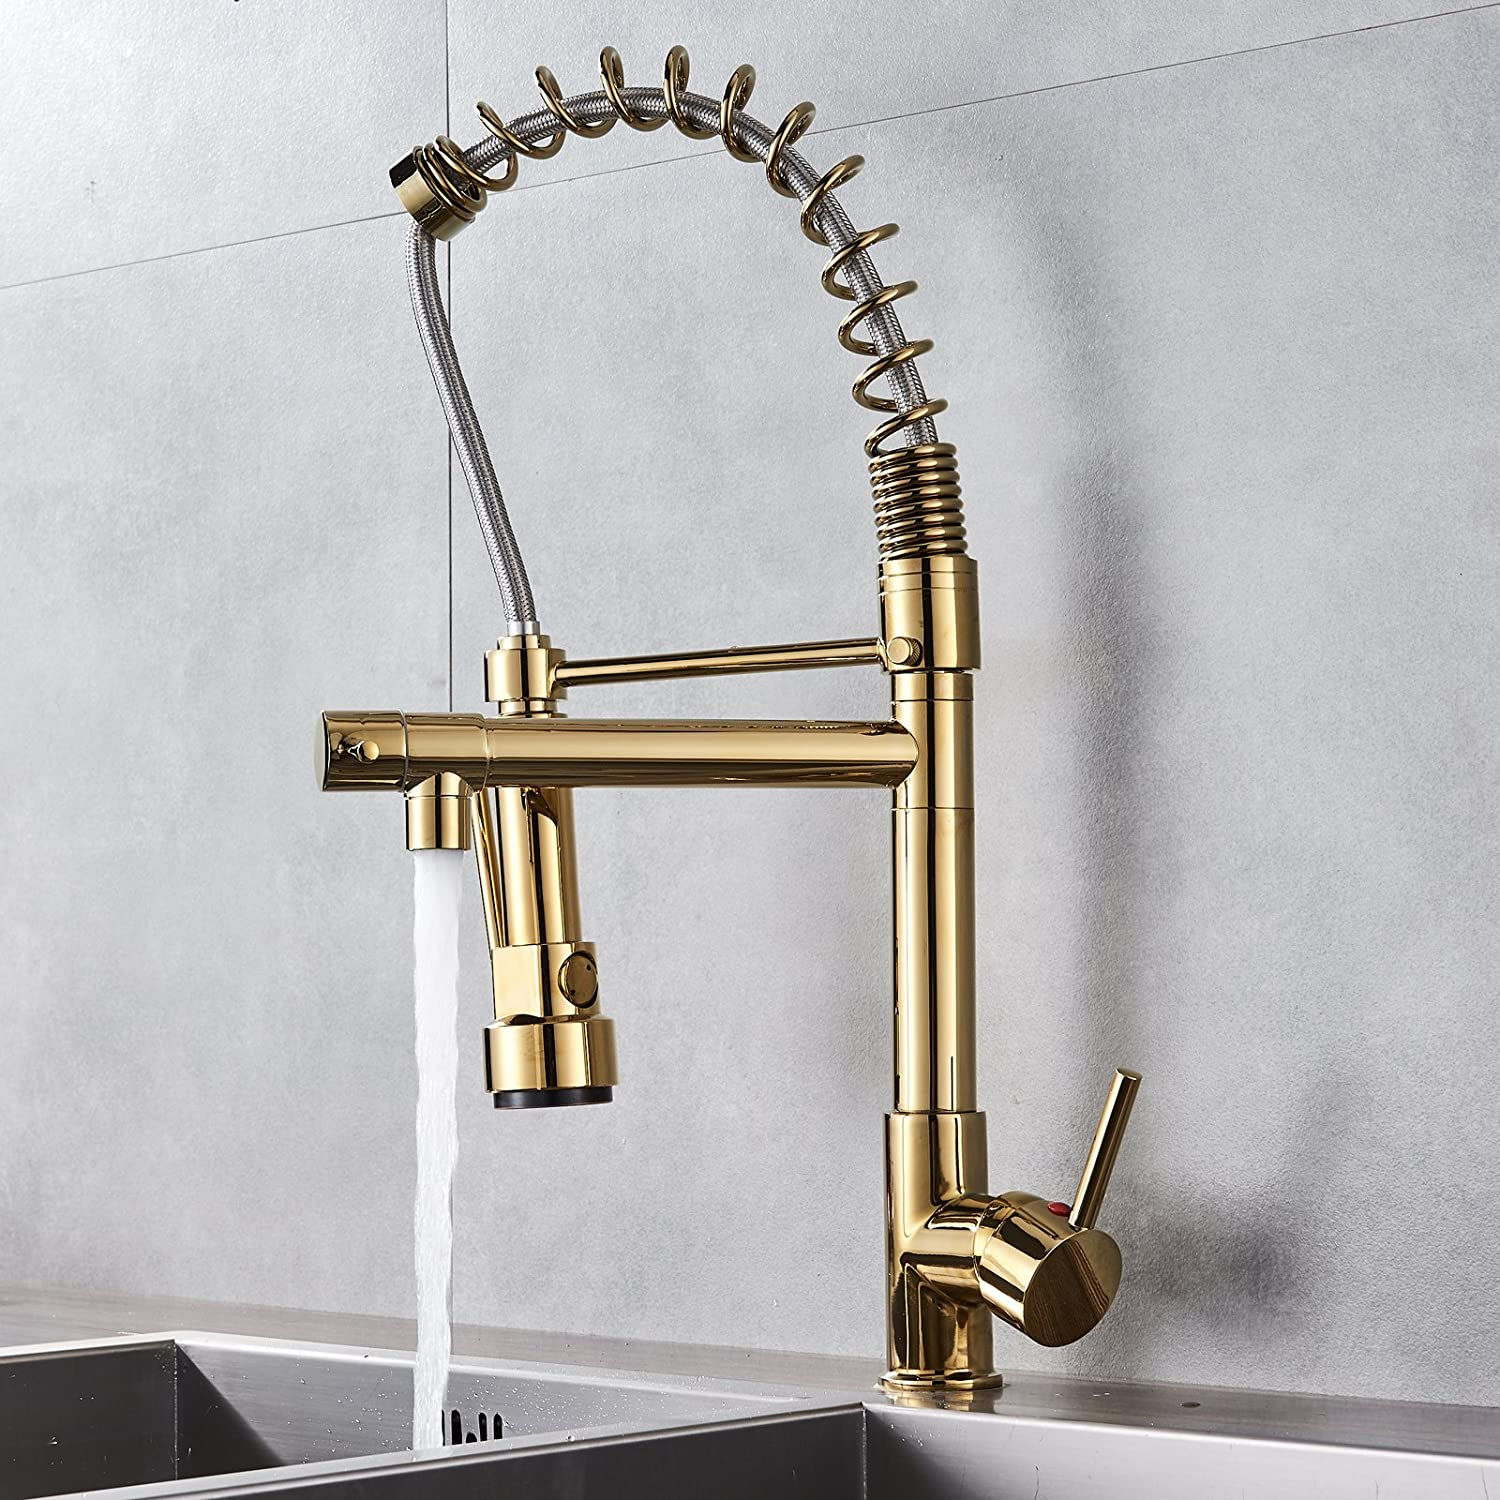 Senlesen High-Arch 360 Degree Spring Single Hole Kitchen Faucet Pull Out Kitchen Sink Faucet Gold Polish